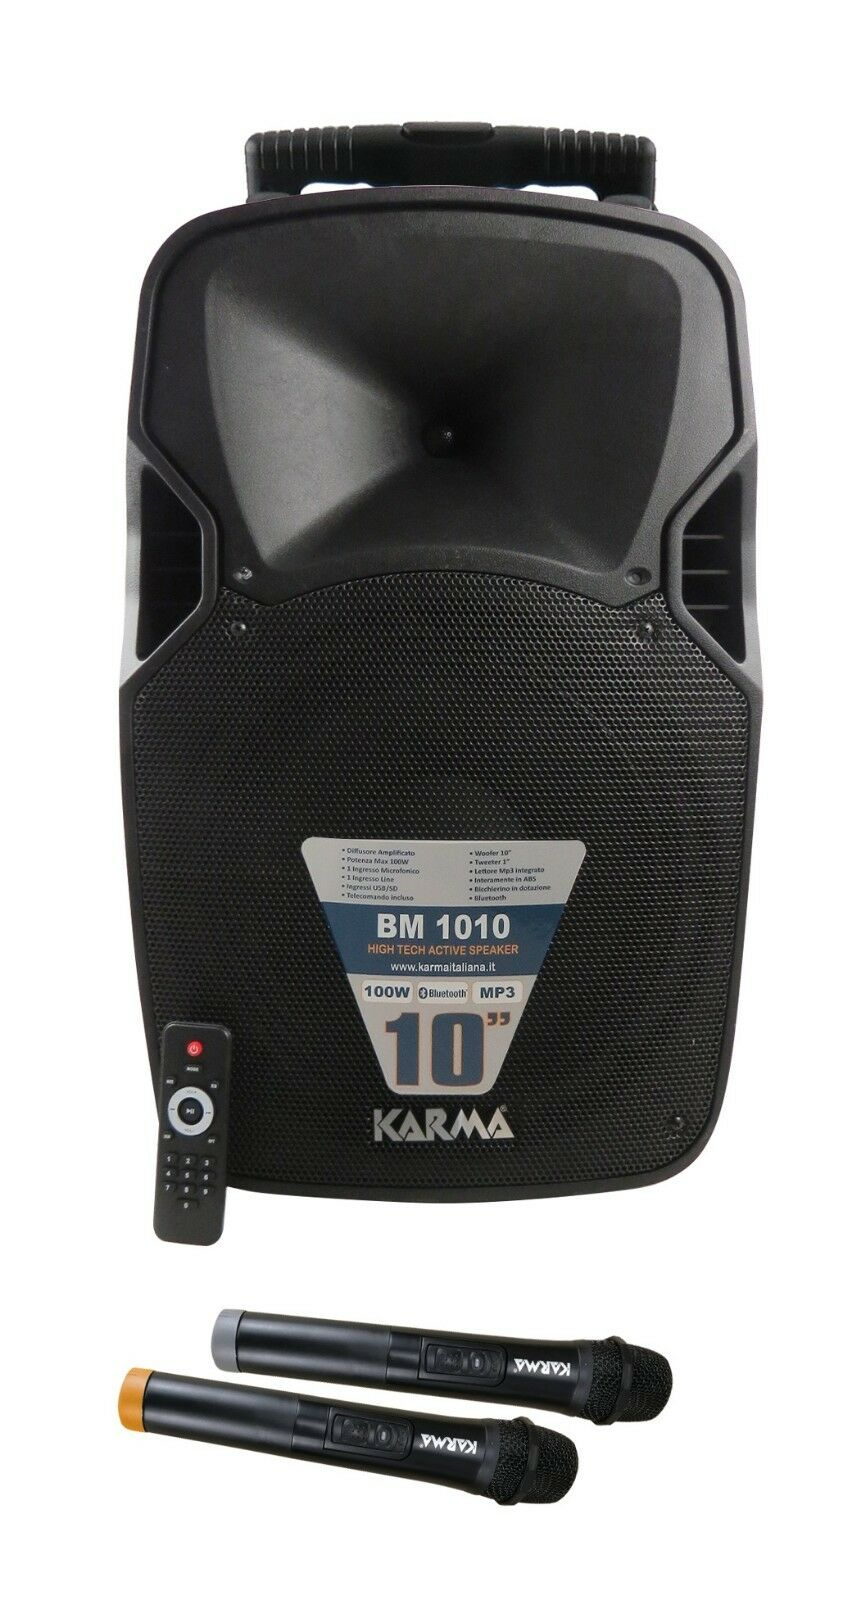 BM 1010 Speaker Amplified by 100w with 2 microphones